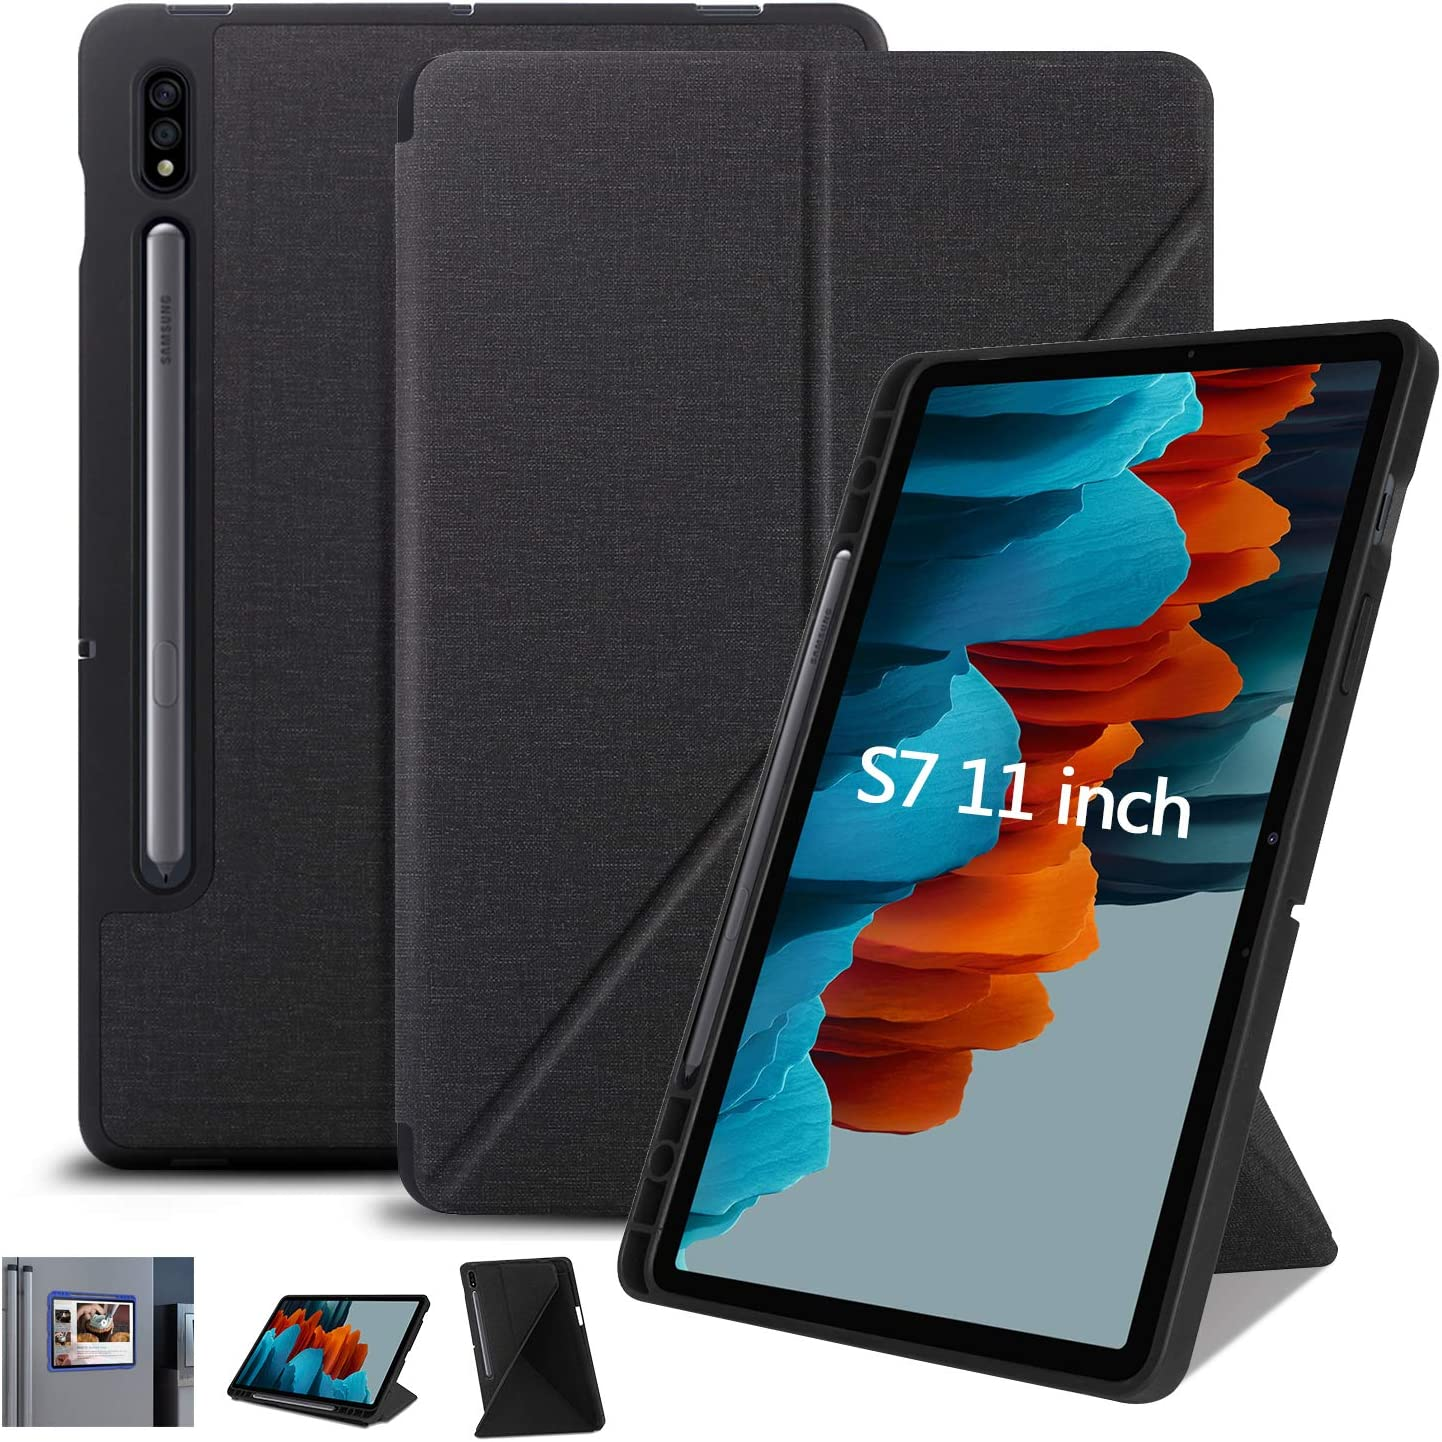 Case for Samsung Galaxy Tab S7 11 inch 2020 Slim Folding Stand Case MultiViewing Angles Soft TPU Back Cover for Samsung Tab S7 11 inch Tablet SMT870T8 Online at Kapruka | Product# gsitem1439